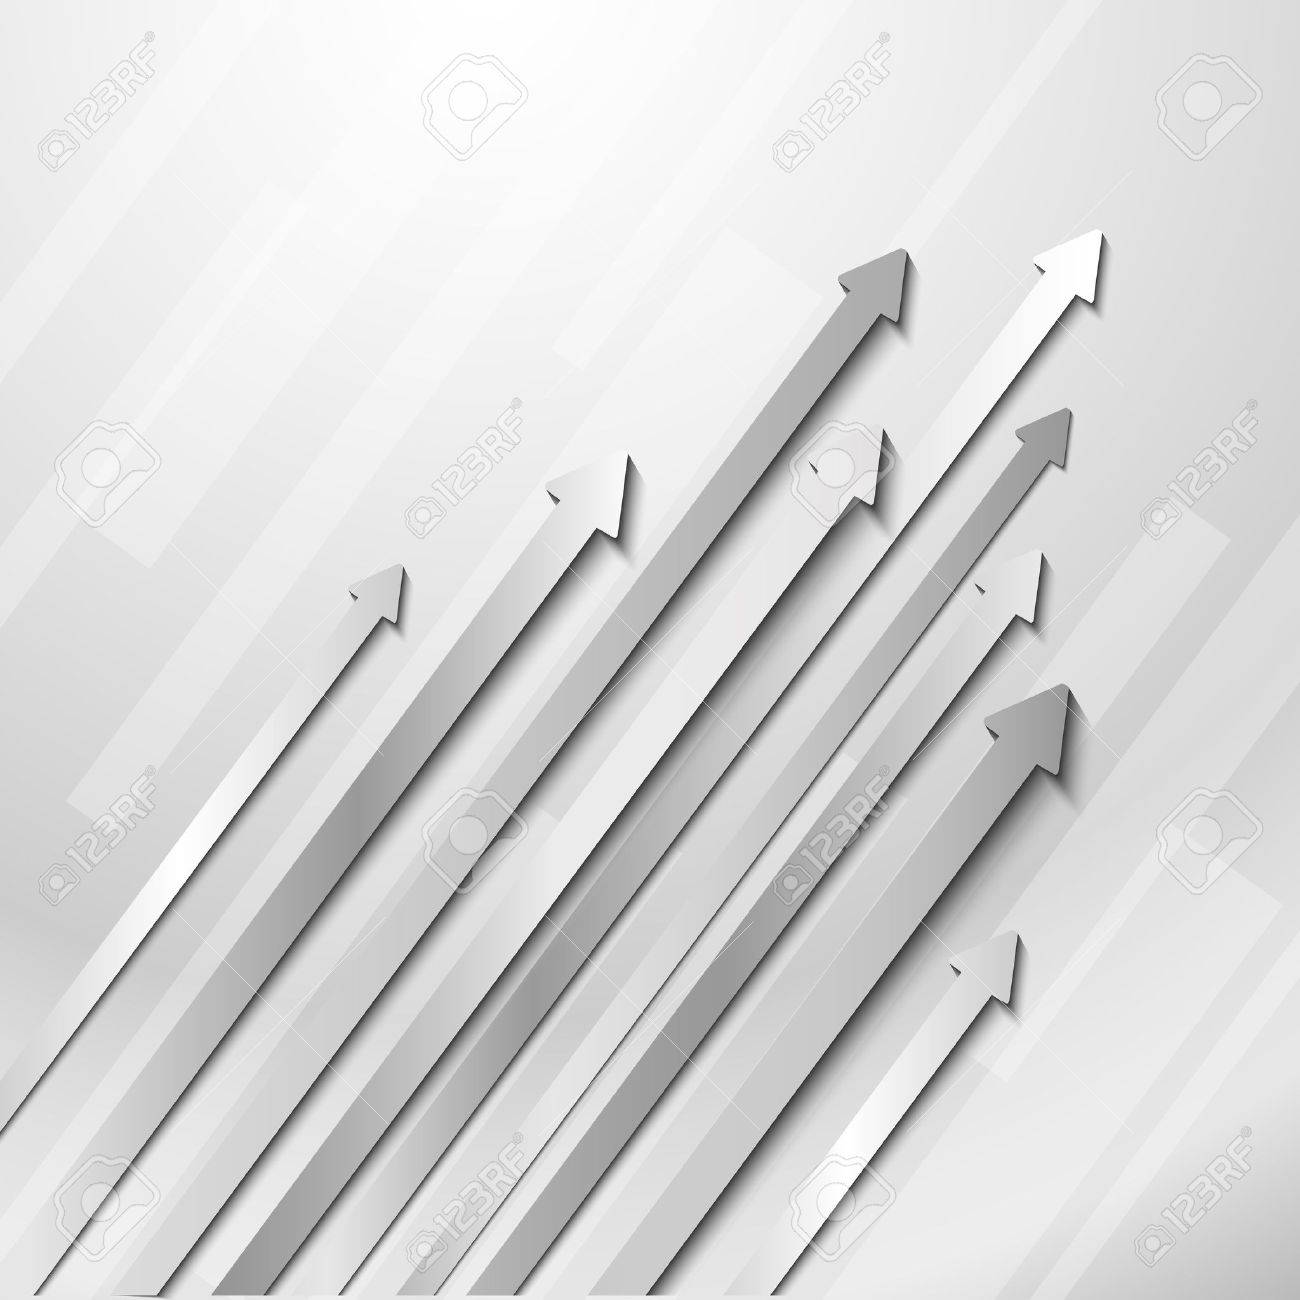 Background image grayscale - Abstract Business Background With Grayscale Arrows Stock Vector 19094285